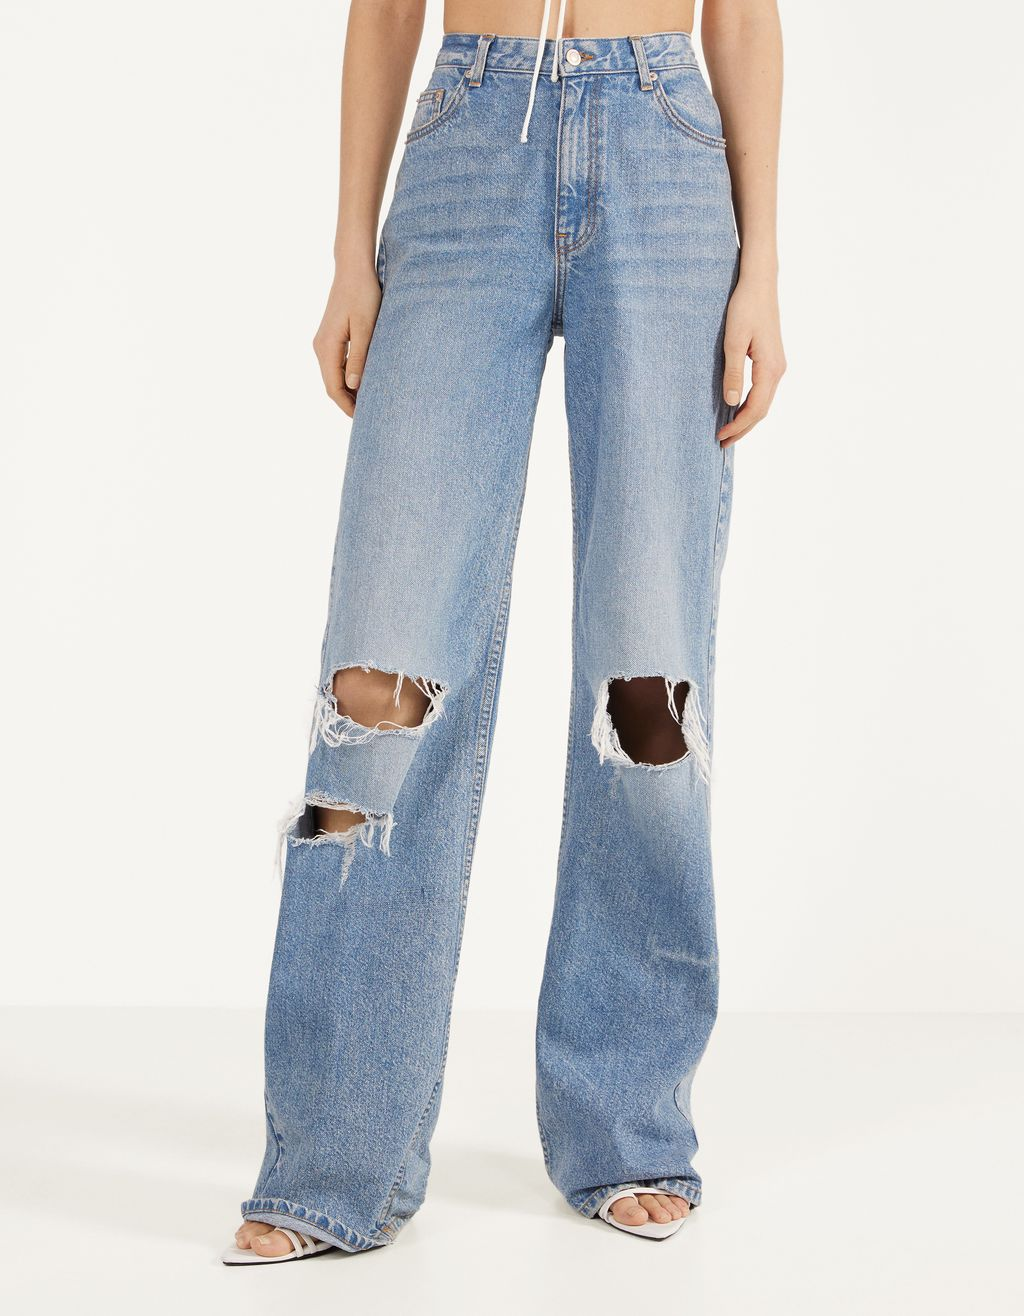 '90s Ripped flare jeans